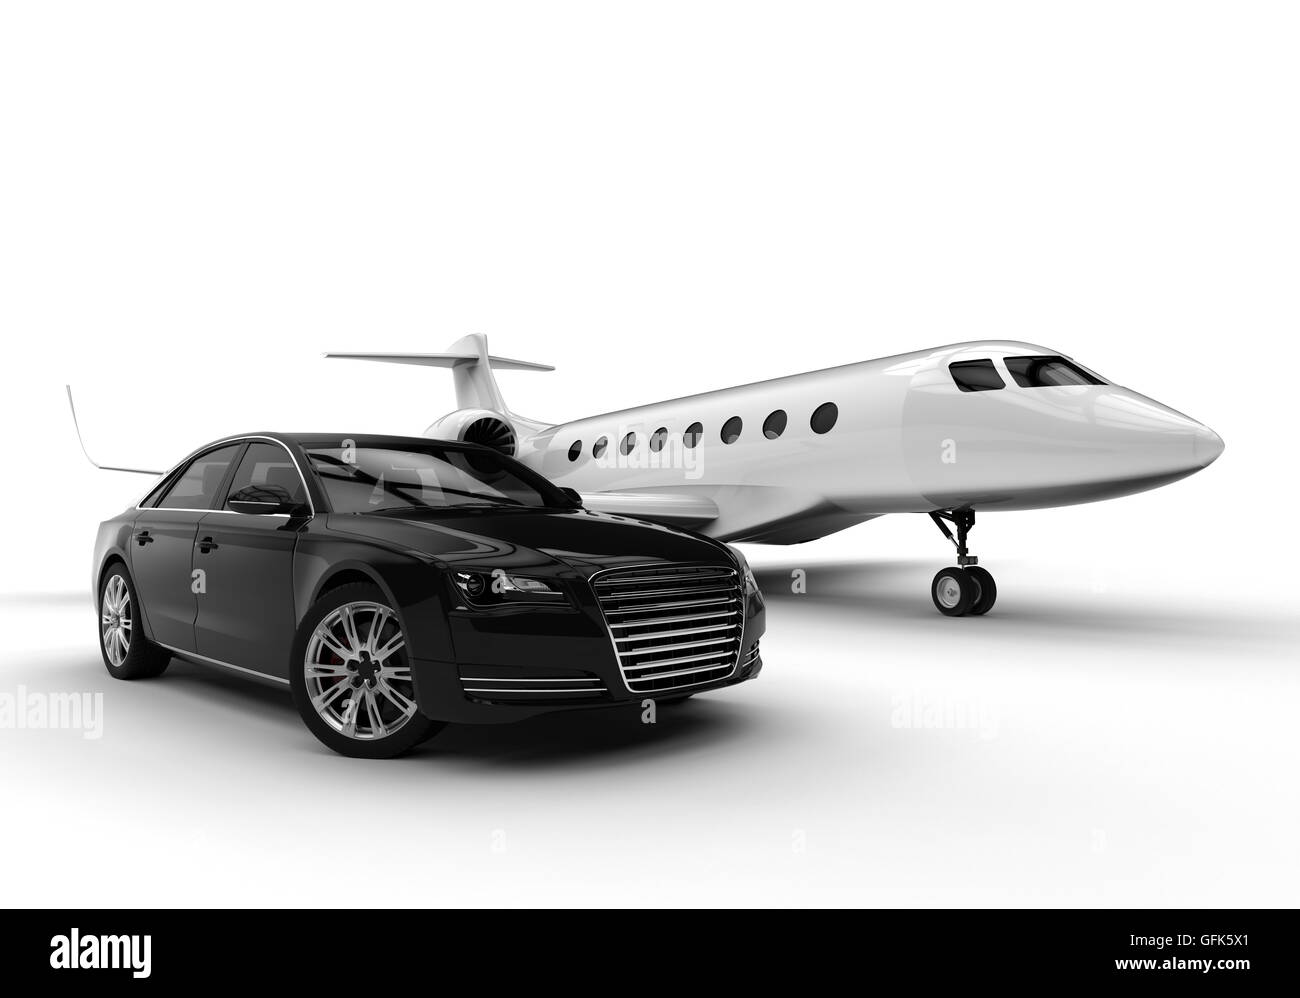 3d Render Image Of A Private Plane And A Limousine Representing An